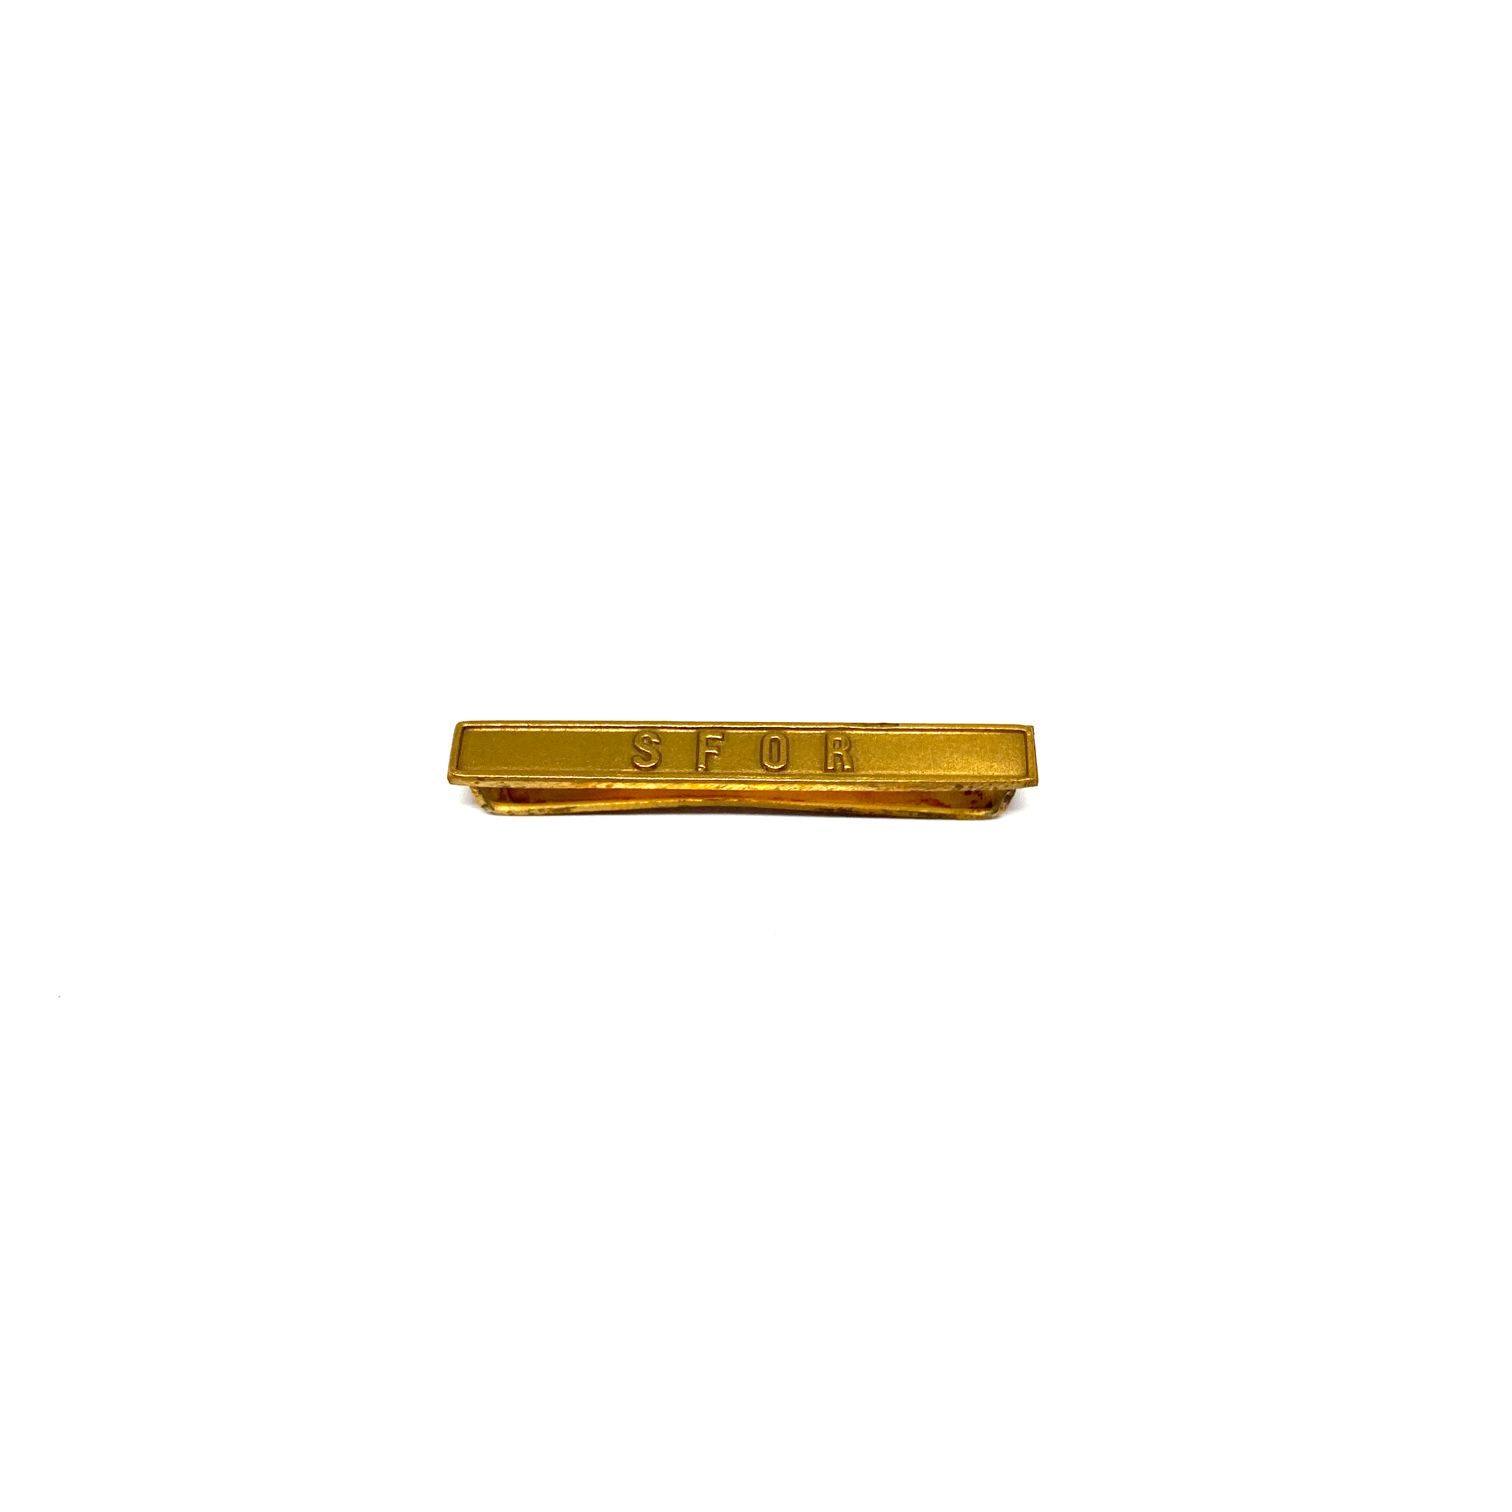 Bar SFOR for military medals